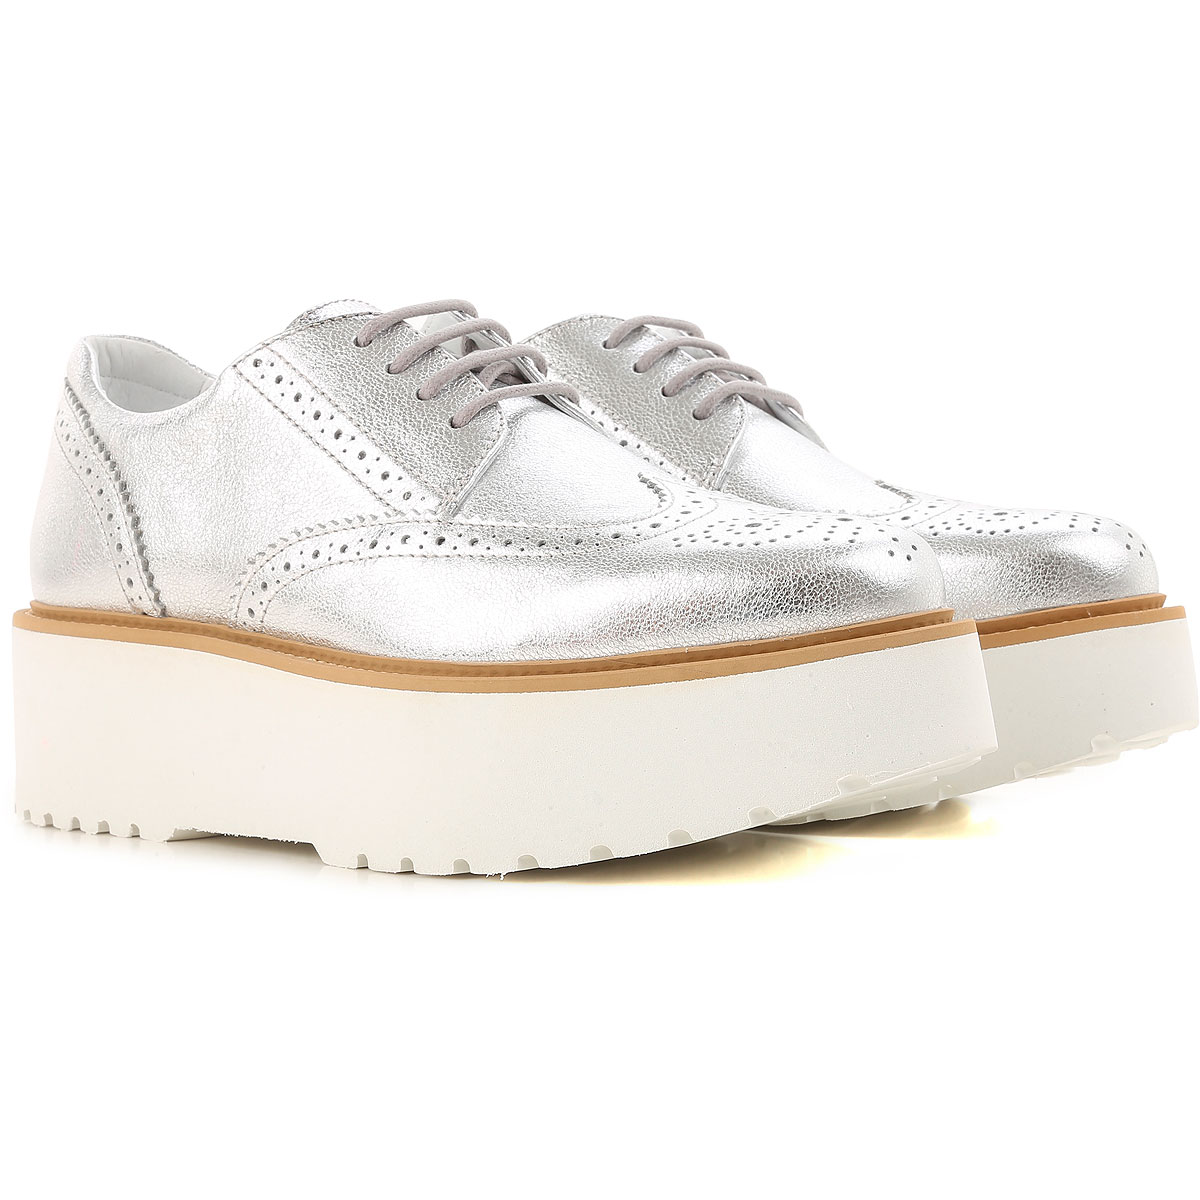 Hogan Wedges for Women in Outlet Silver USA - GOOFASH